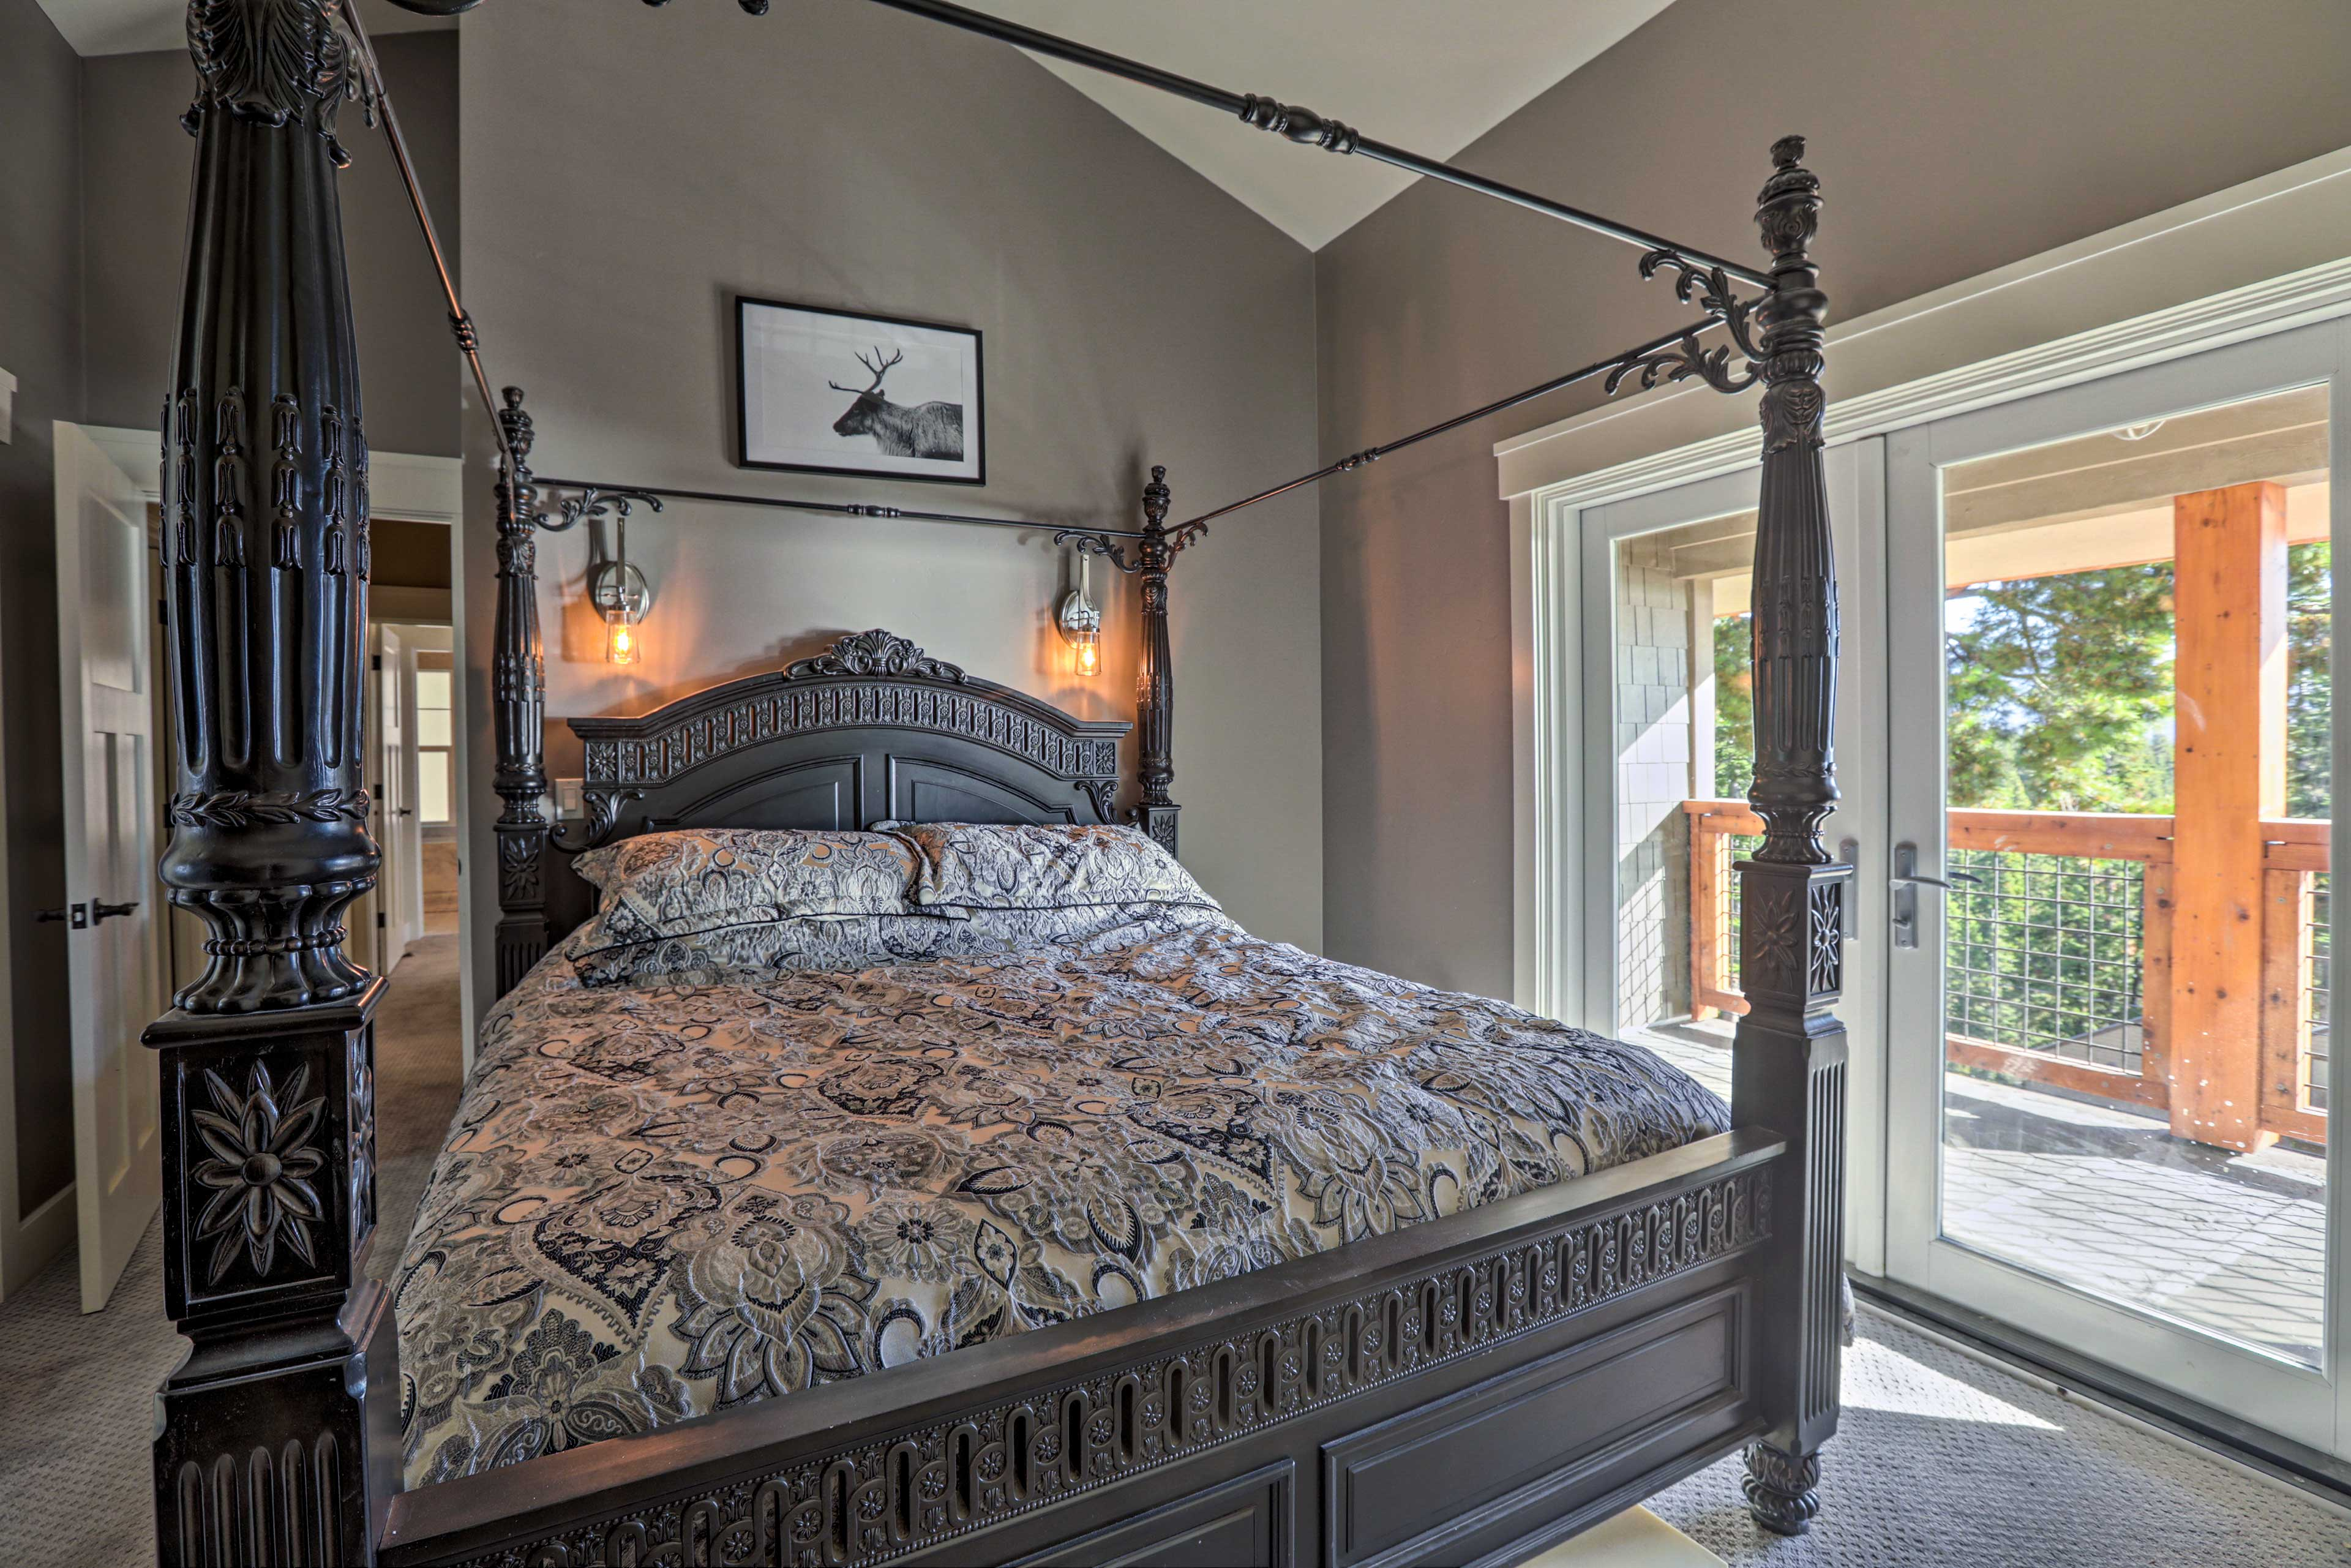 The fist master bedroom boasts a king bed and deck access.